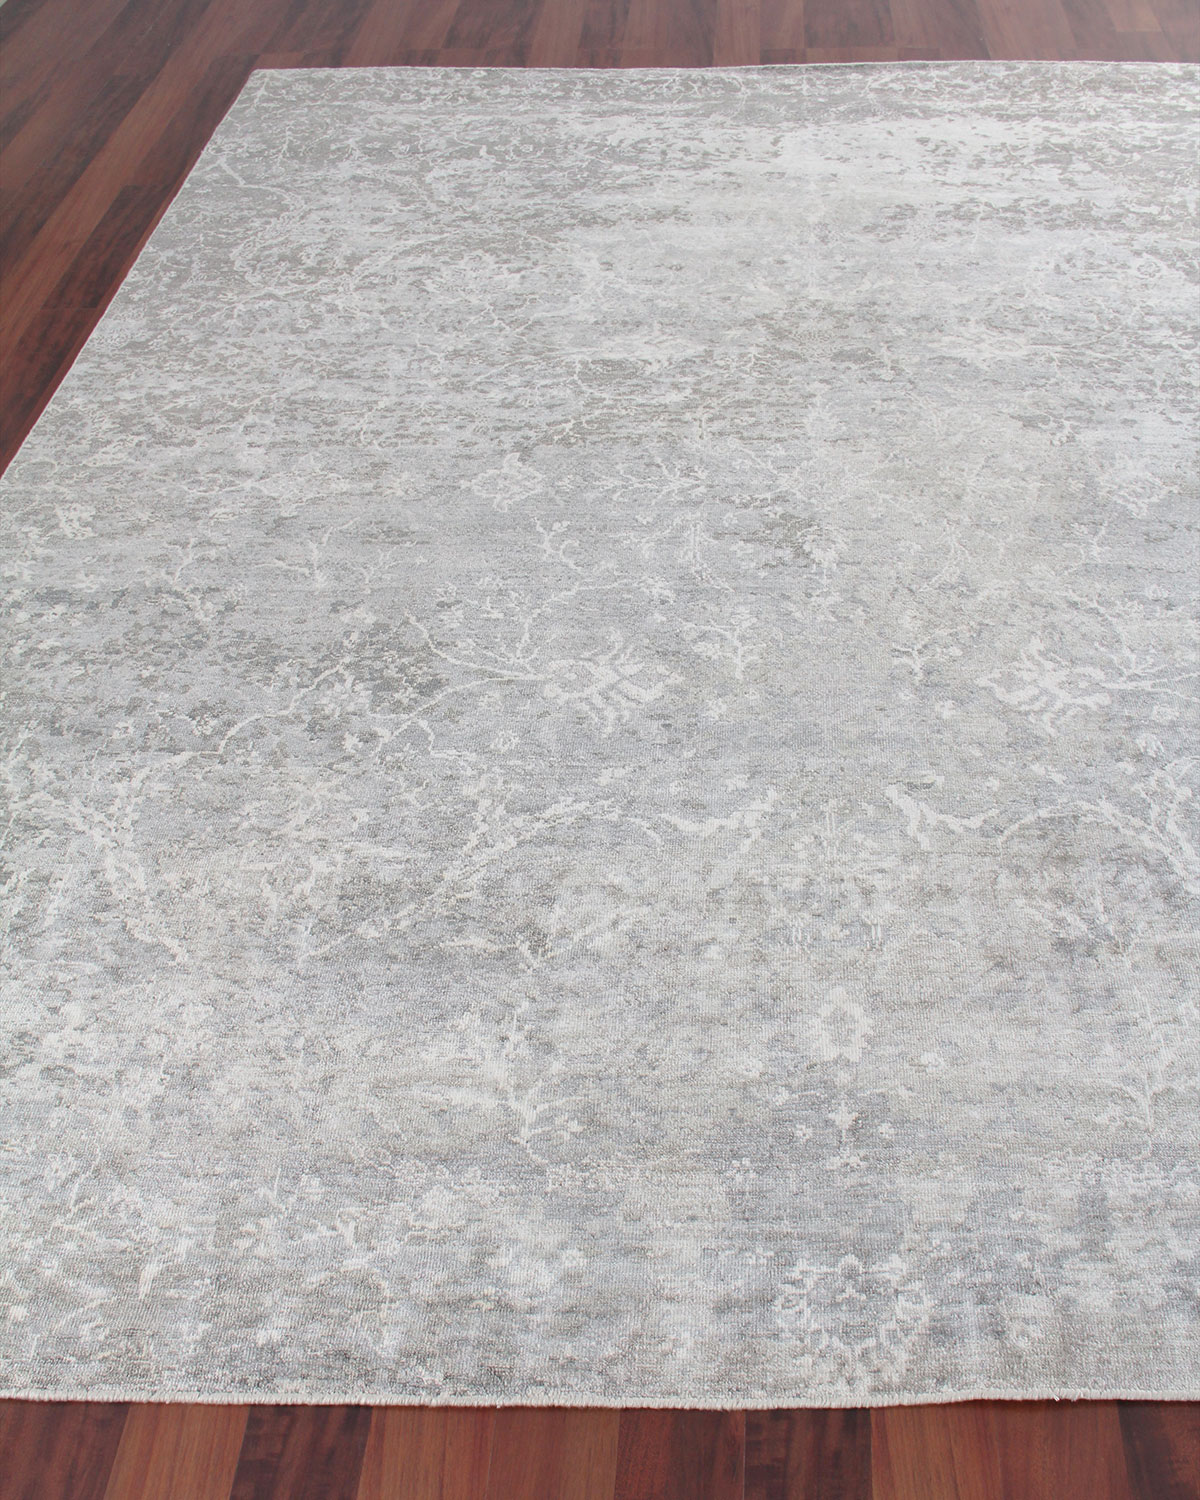 Muncy Hand-Knotted Rug, 9' x 12'